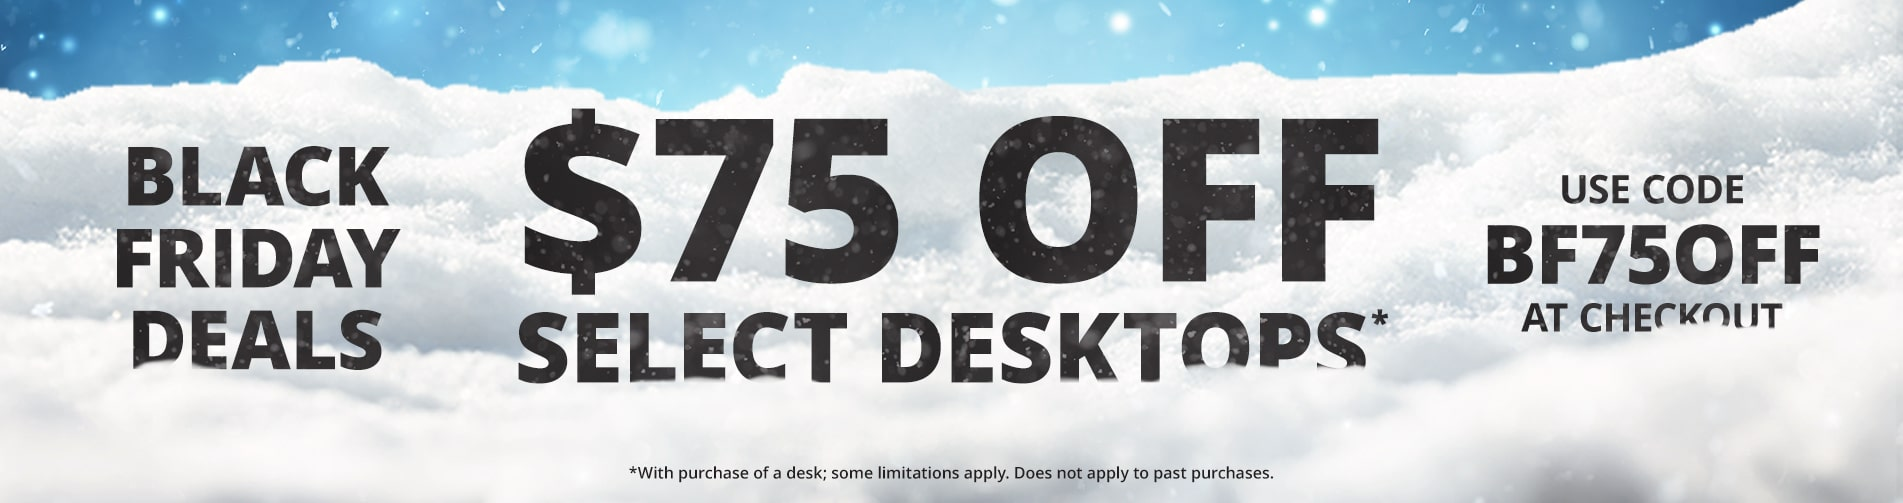 Save $75 on select desktops with coupon code BF75OFF